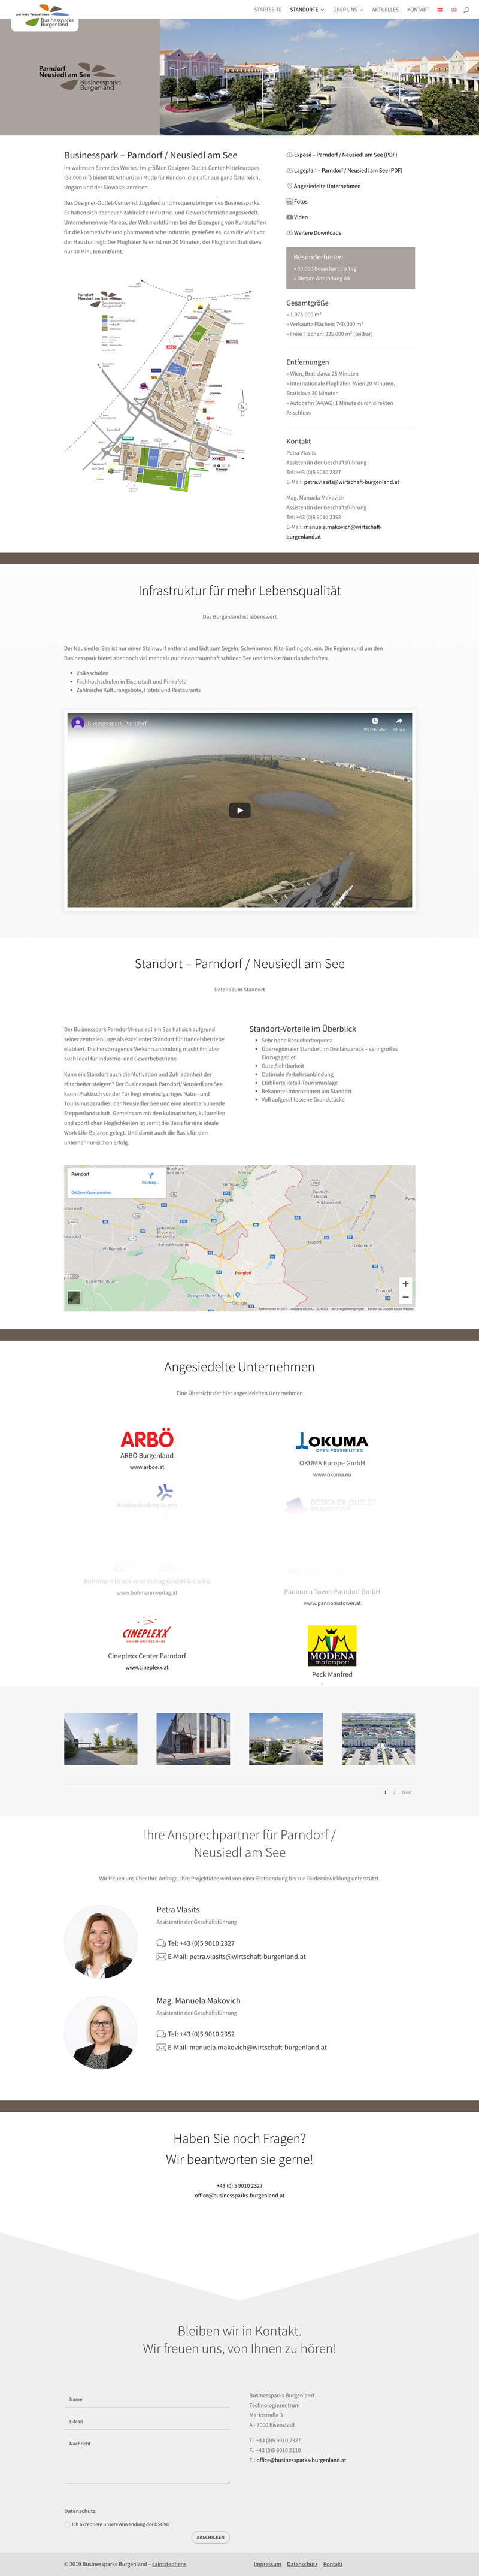 webdesign business parks Burgenland